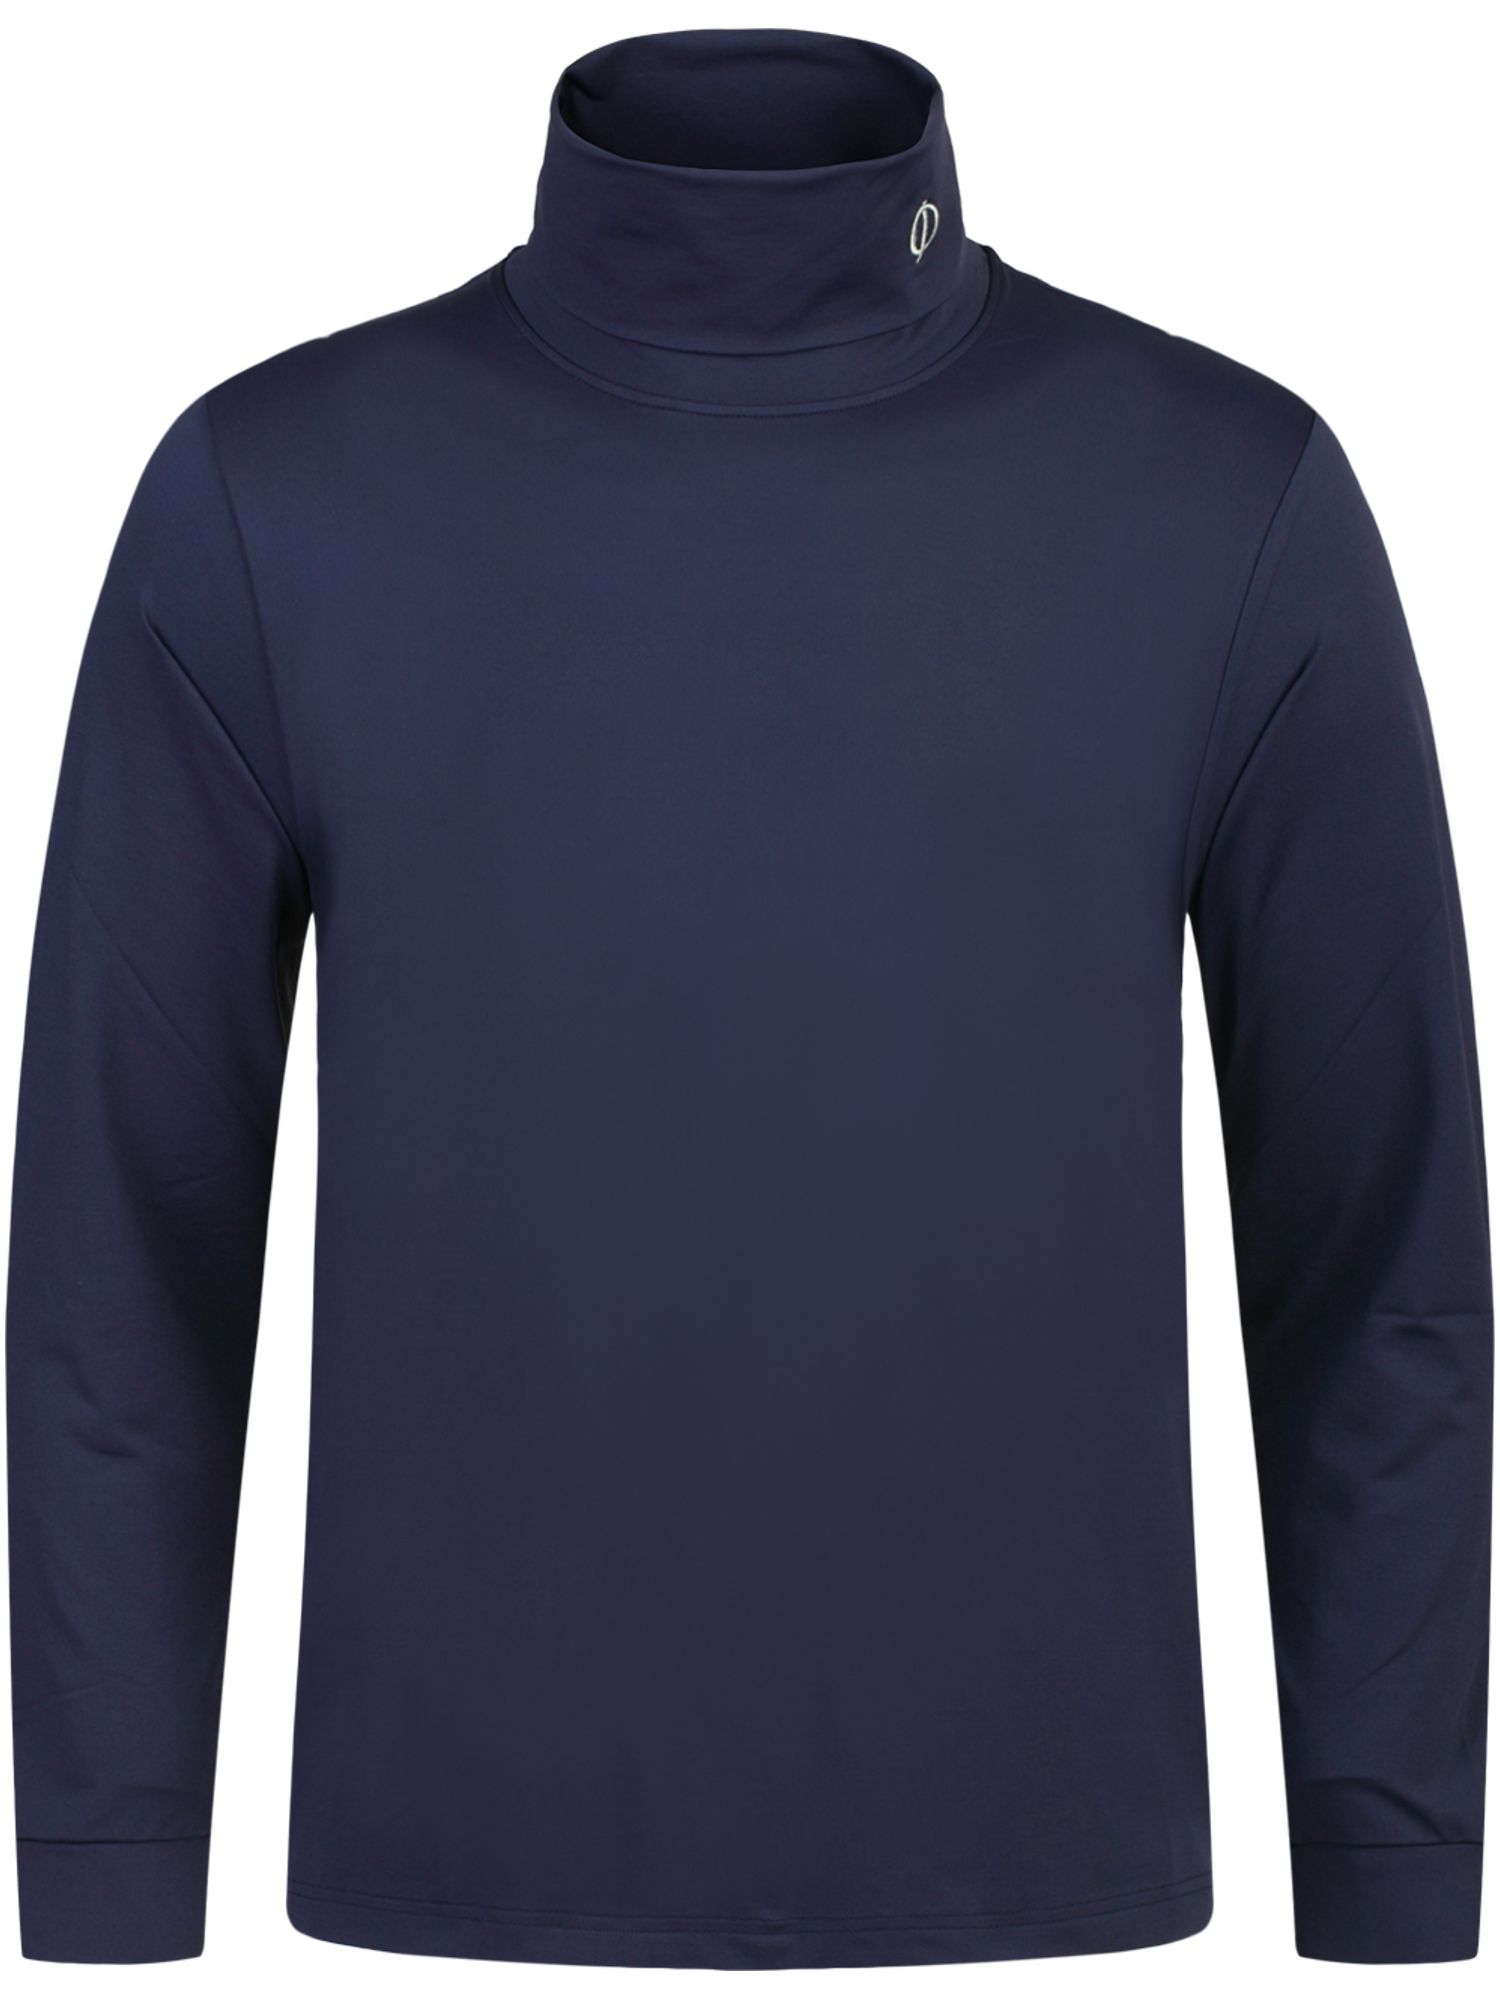 Men's Oscar Jacobson Birk Rollneck, Dark Blue